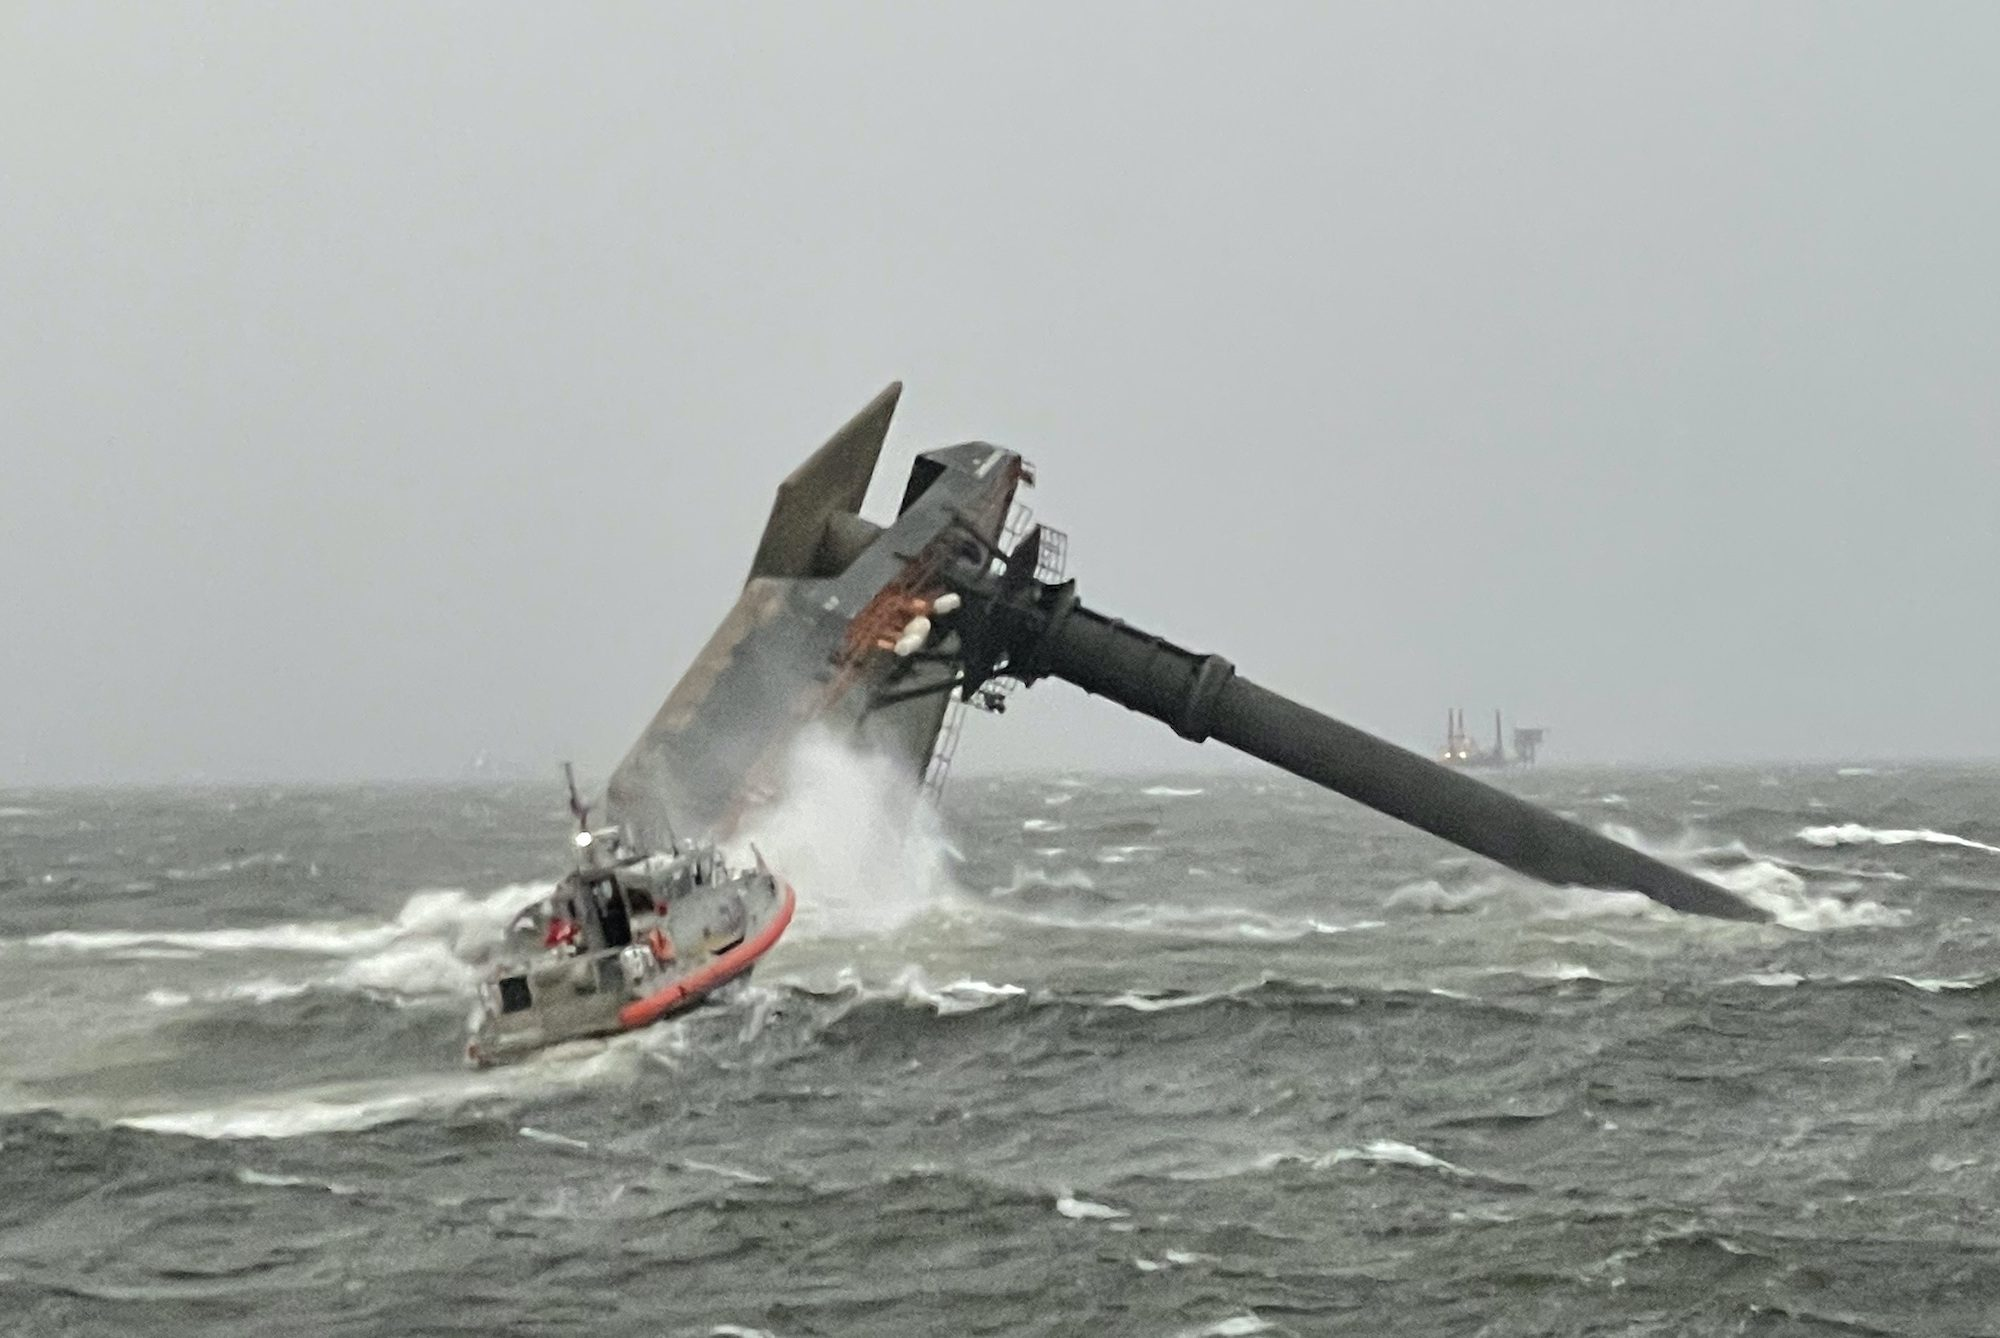 seacor power capsized